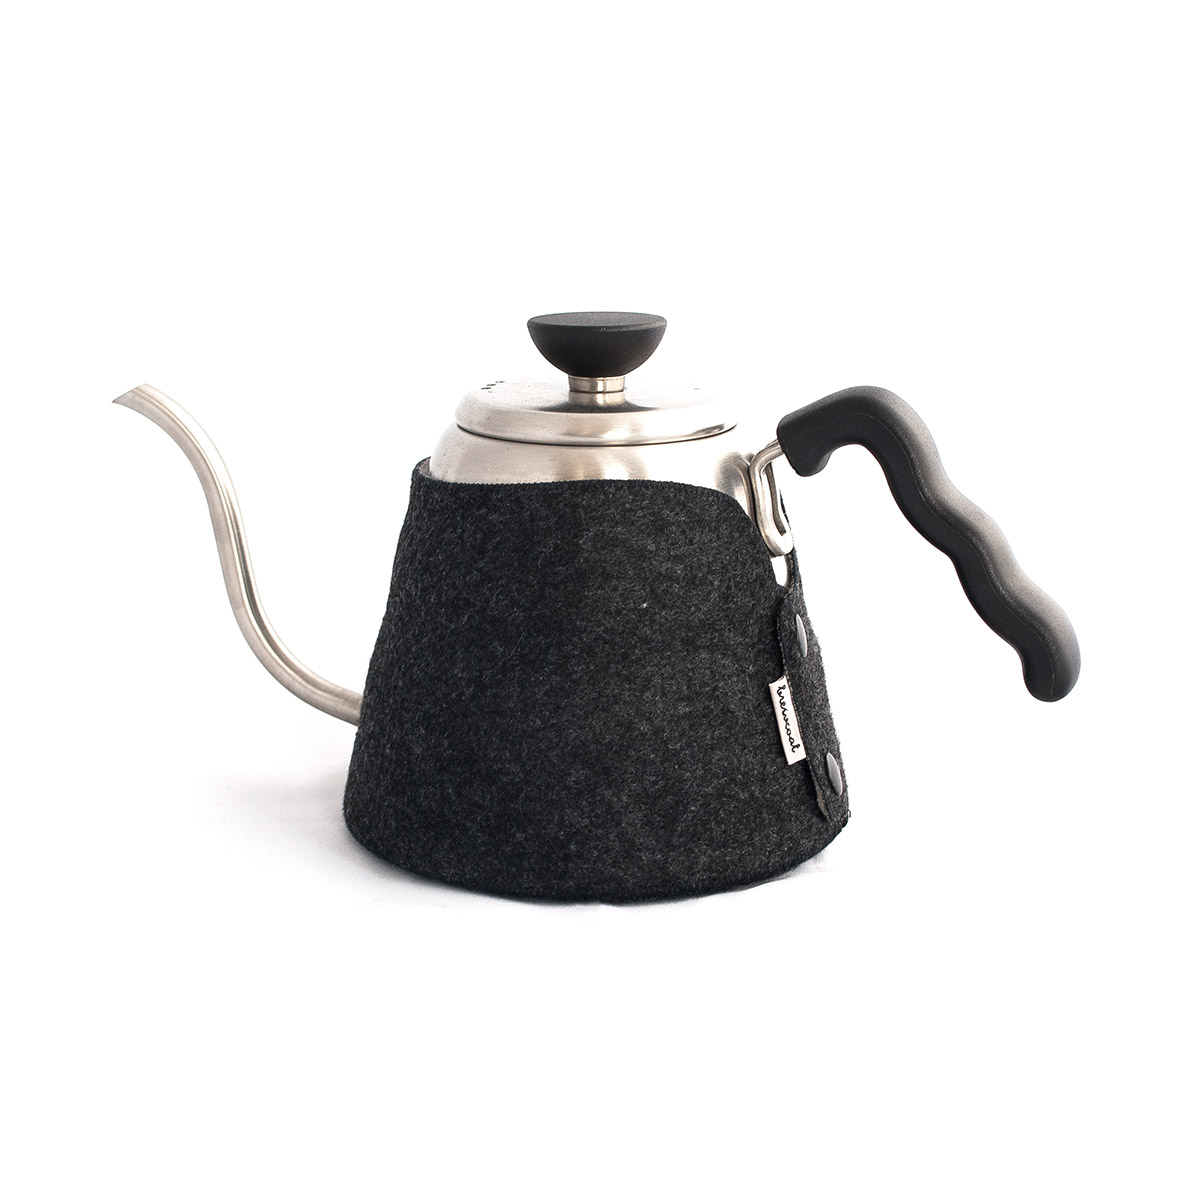 Brewcoat for Hario Buono Kettle